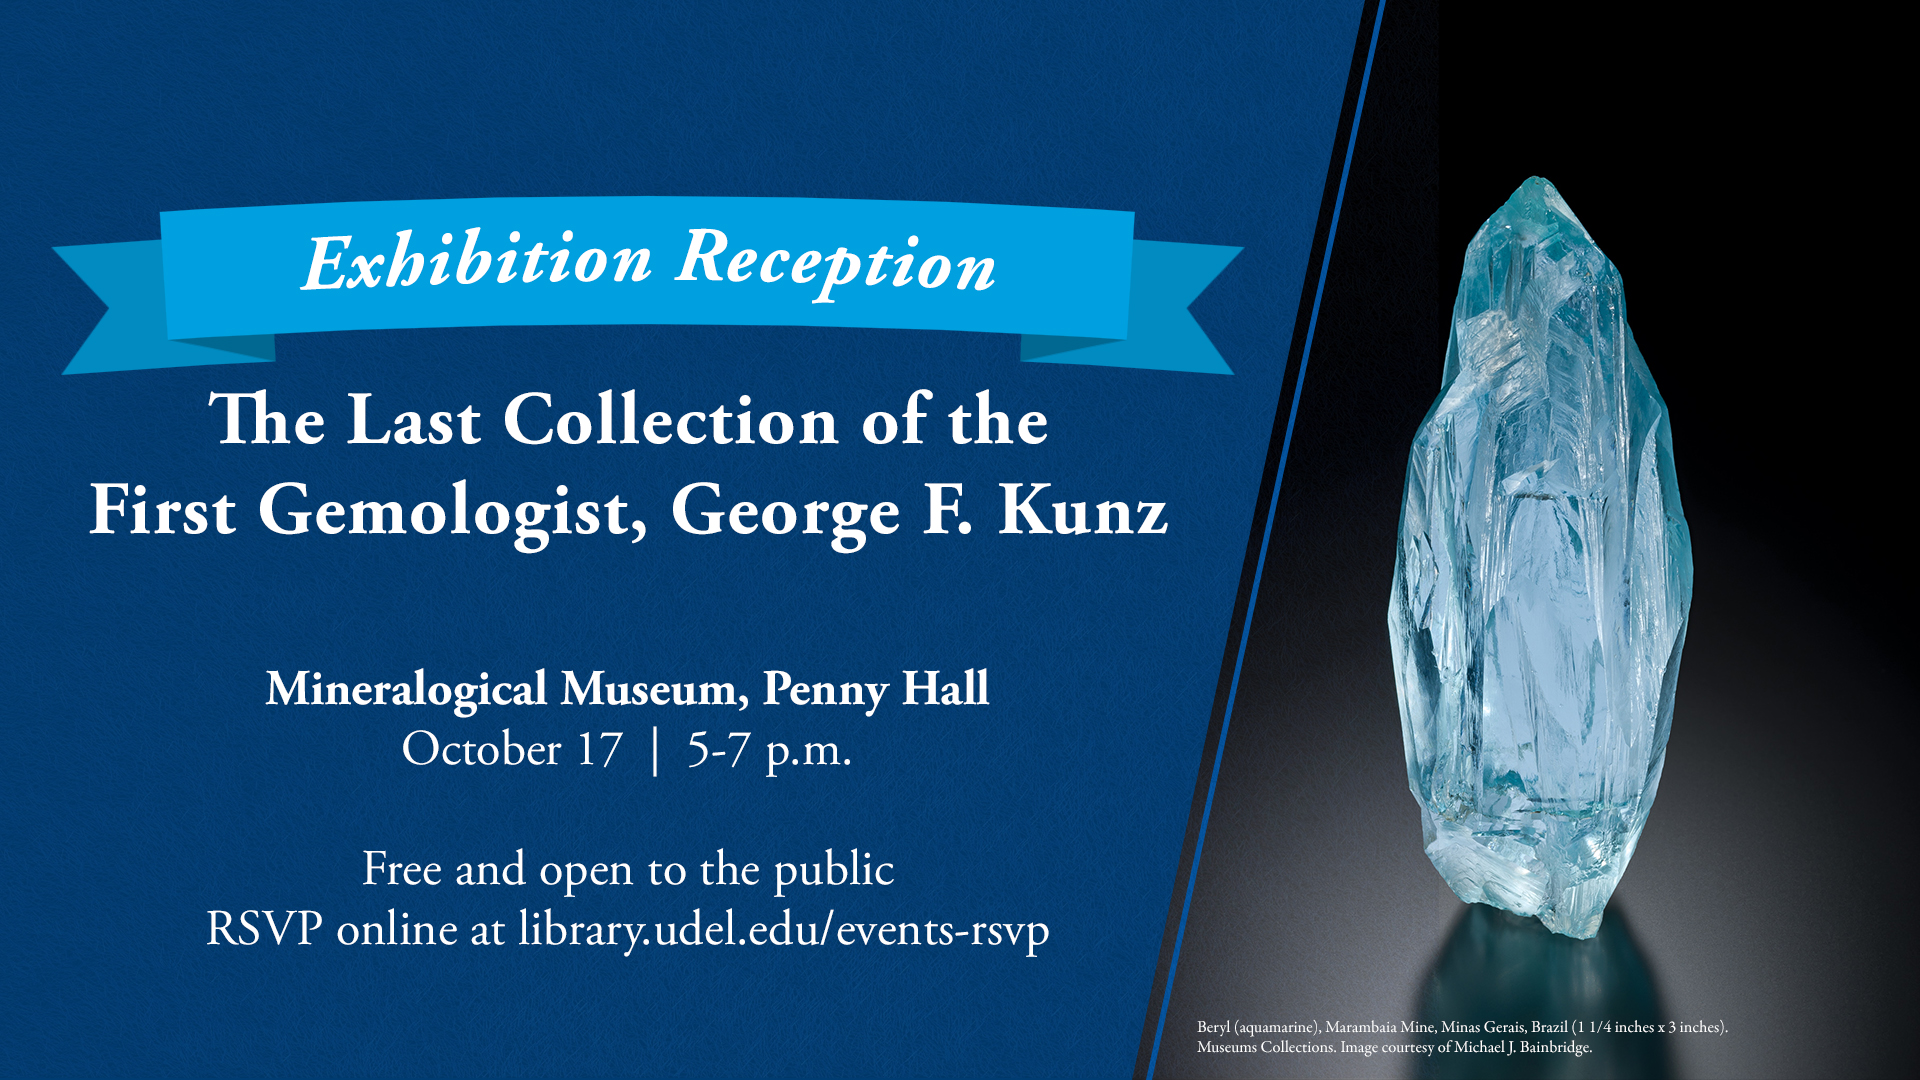 Reception for The Last Collection of the First Gemologist, George F. Kunz